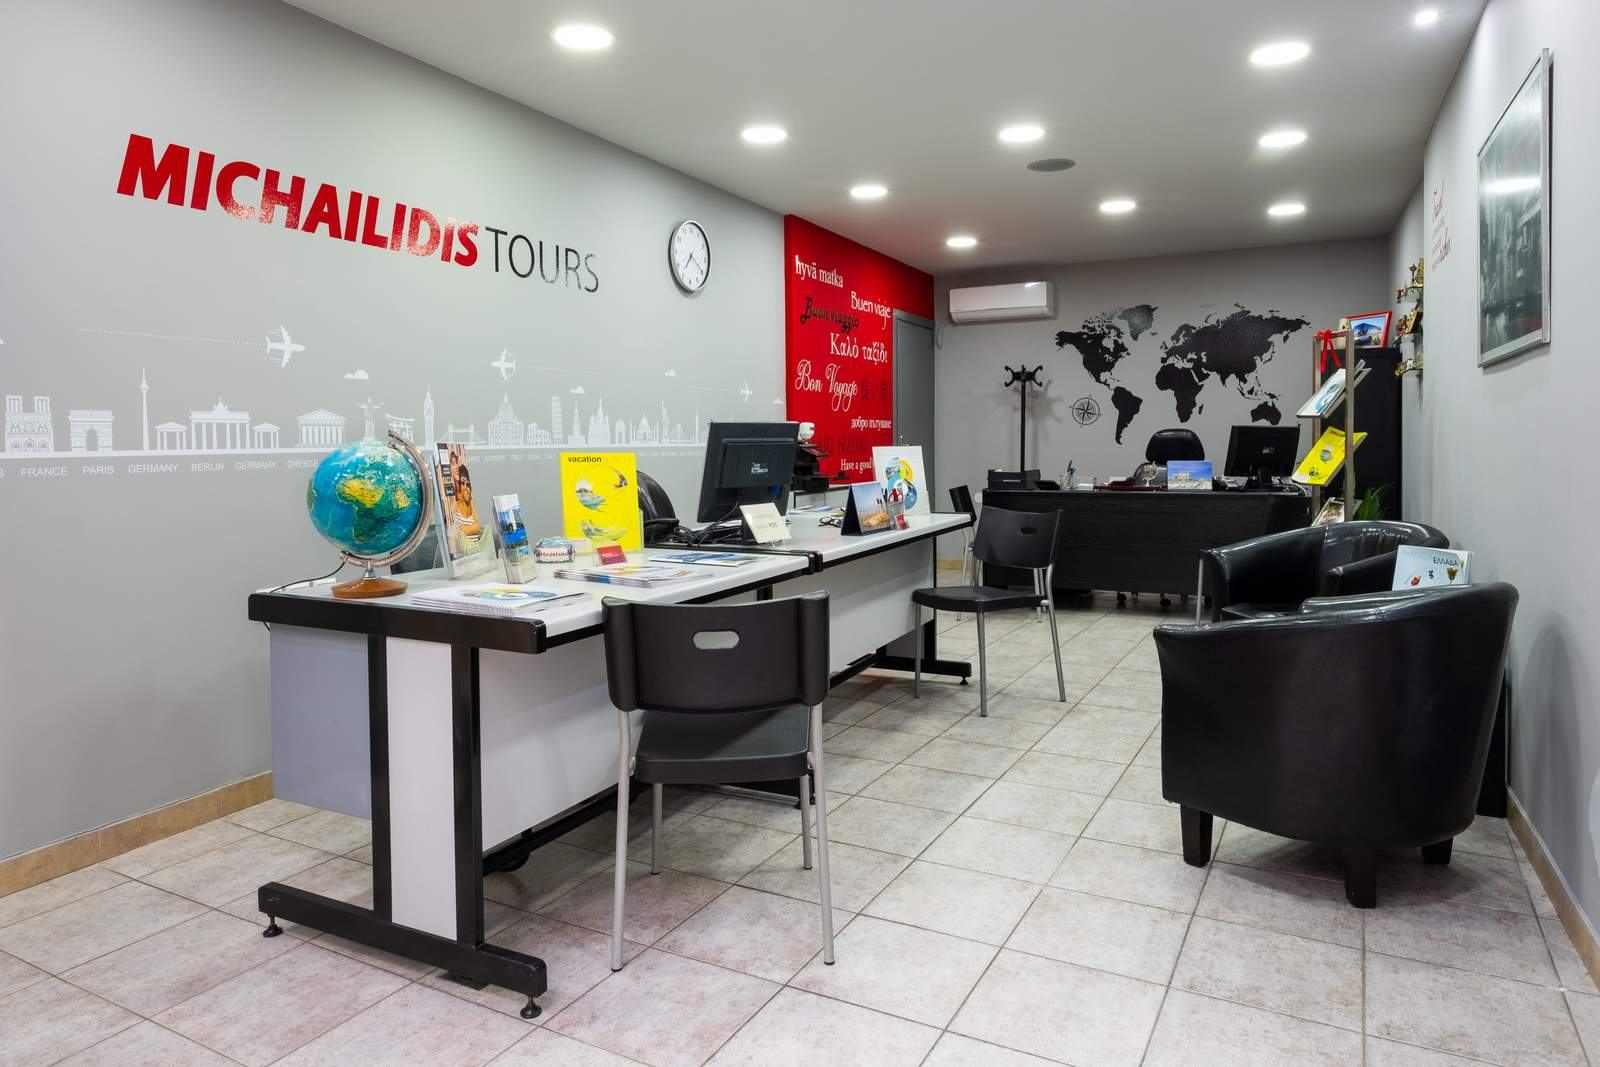 michailidis tours office